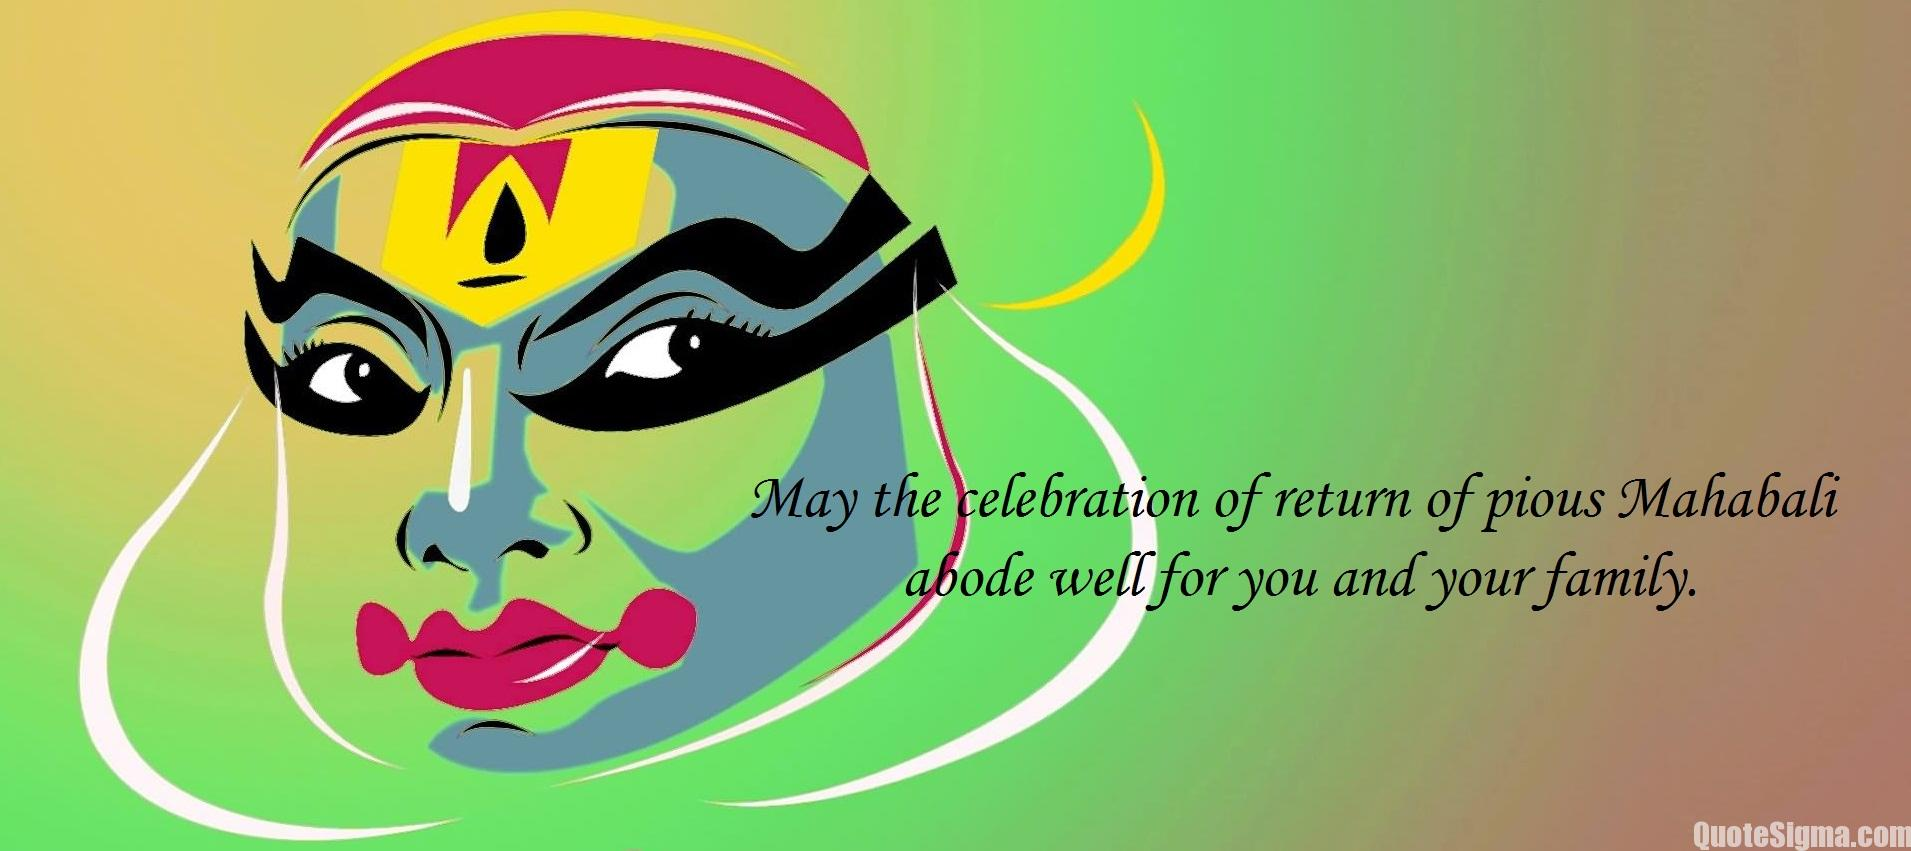 Best Onam Wishes Onam Images Onam Wallpaper Quote Sigma